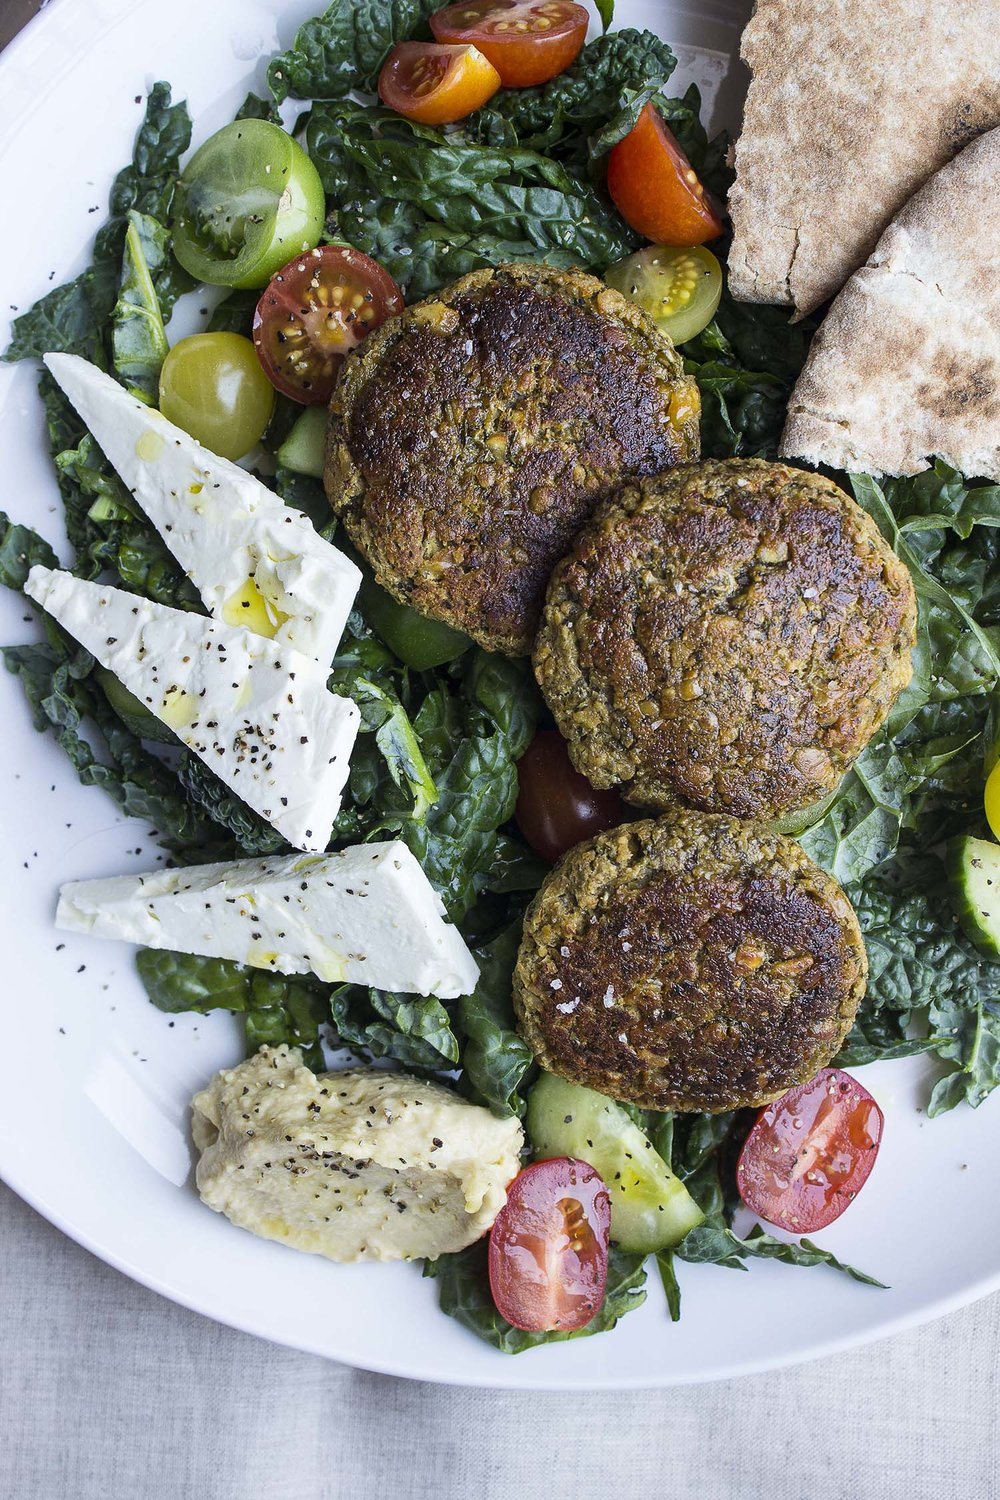 Baked Green Falafel and Greek Salad | Image: Laura Messersmith